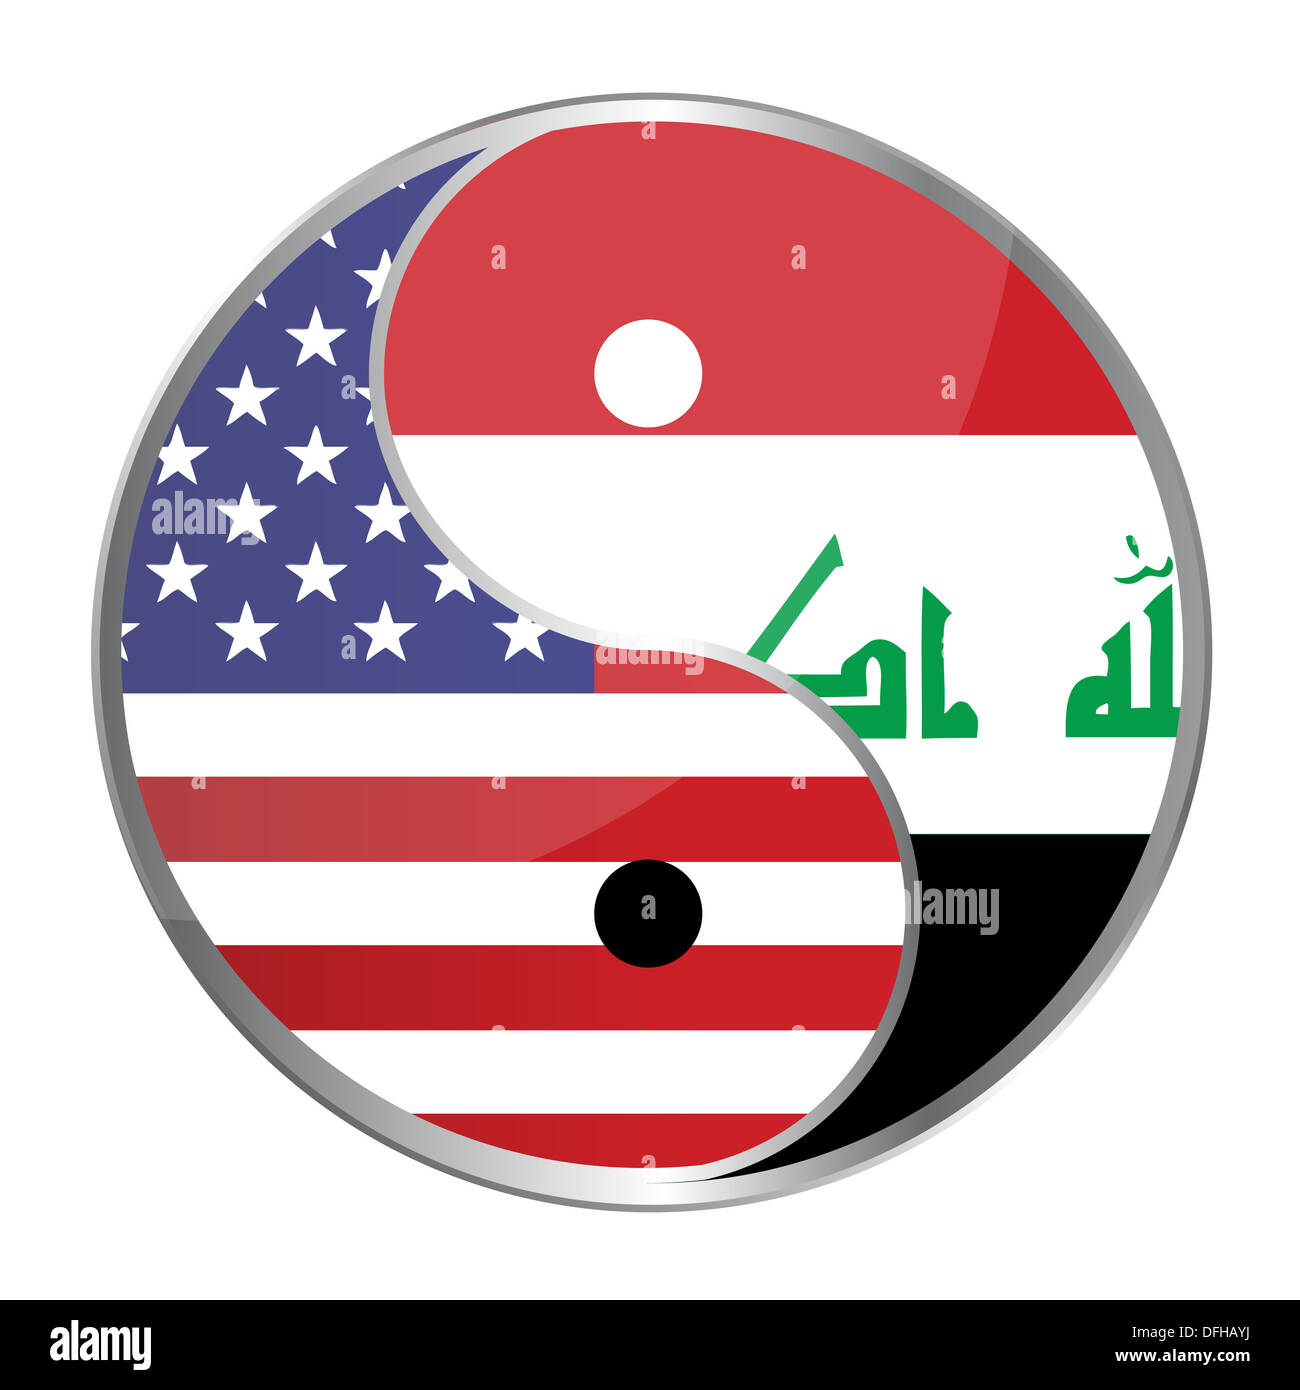 Ying yan symbol with the American and Iraqi flags. Vector File Available / Ying Yan - Stock Image